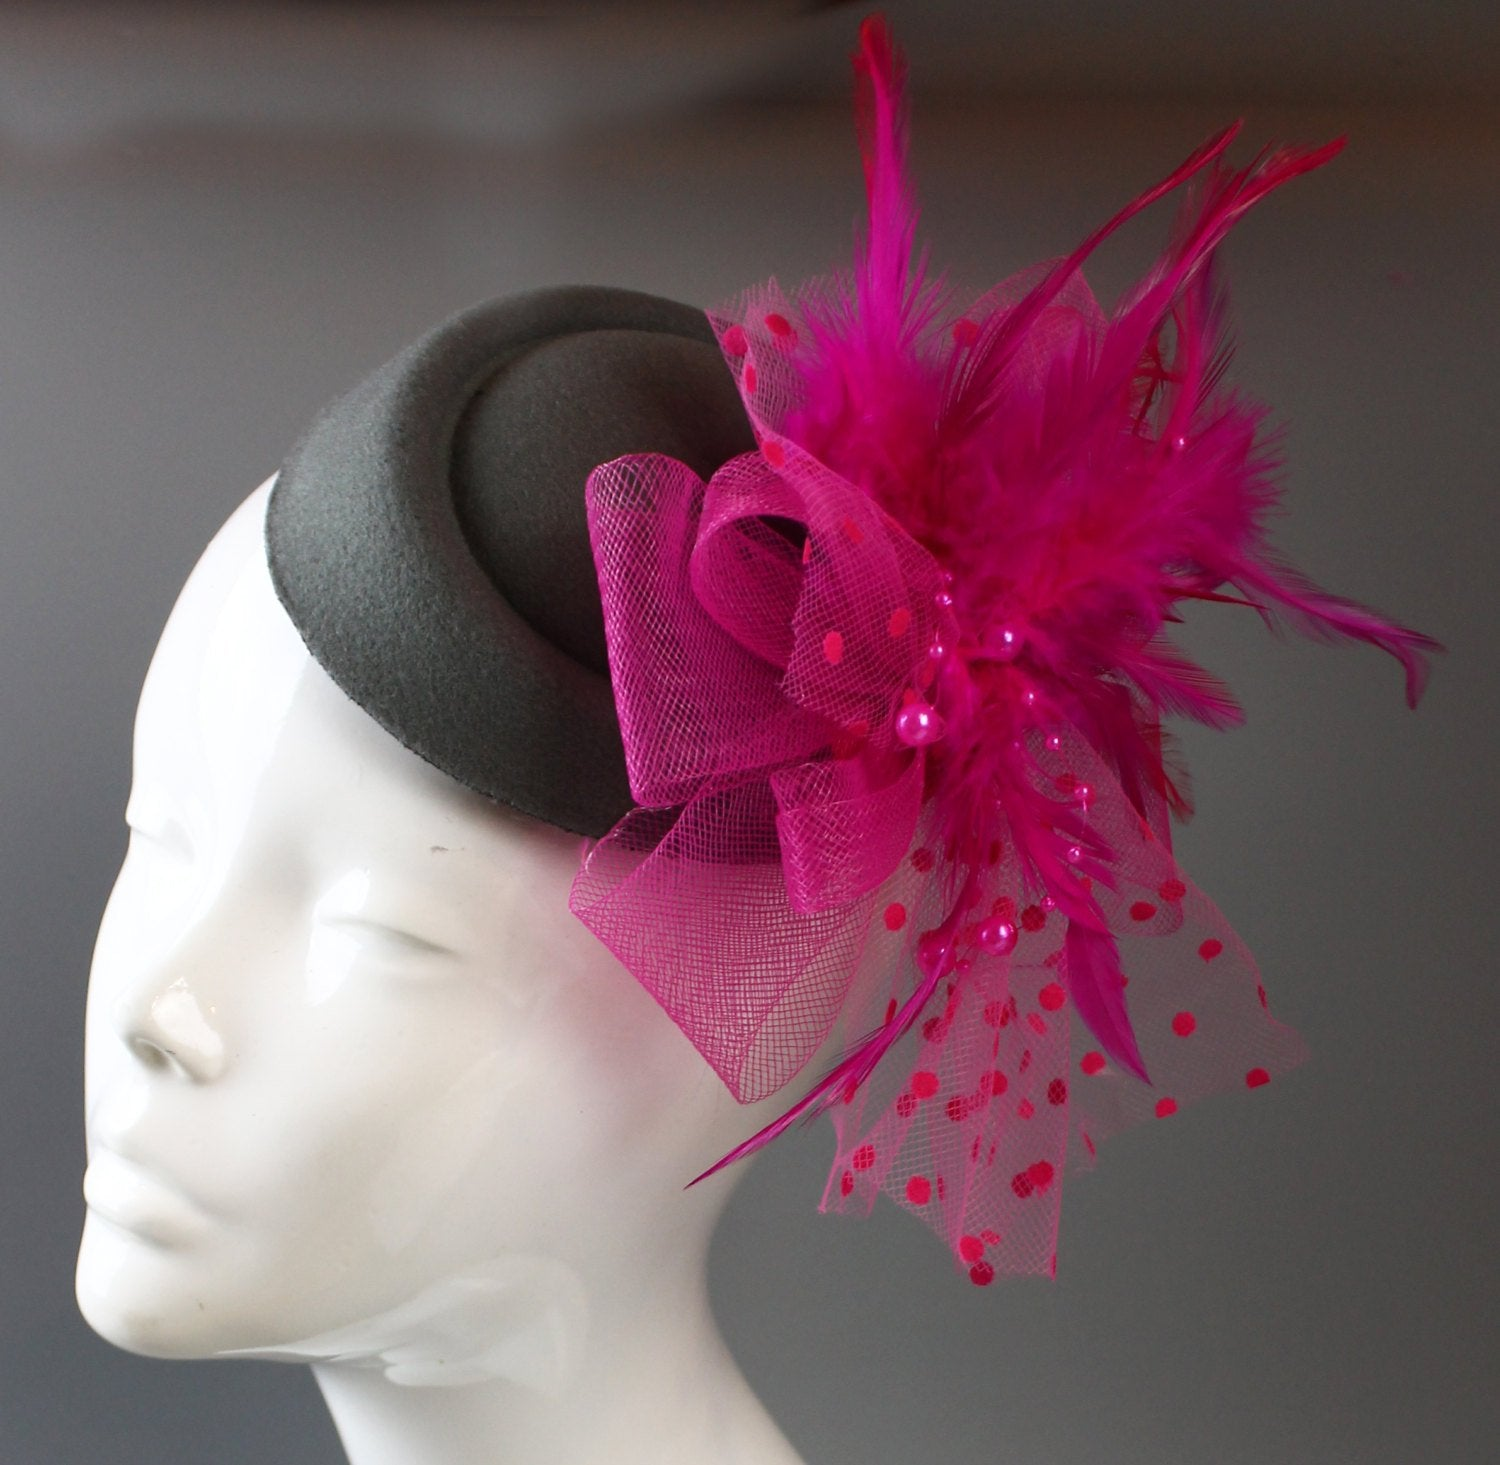 Caprilite Grey and Fuchsia Hot Pink Fascinator Hat Pill Box Veil Hatinator UK Wedding Ascot Races Clip Felt